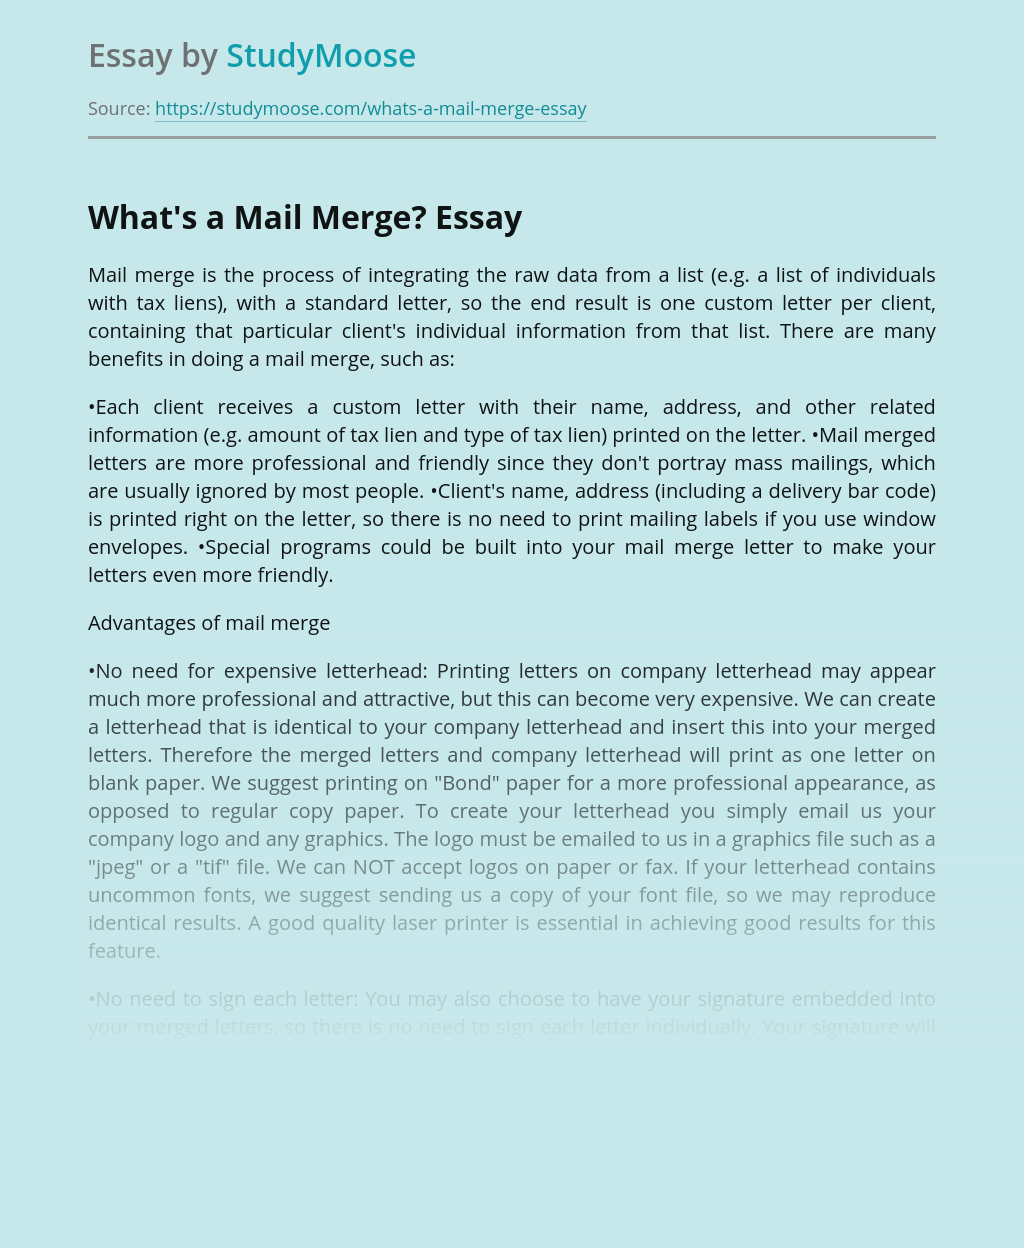 What's a Mail Merge?